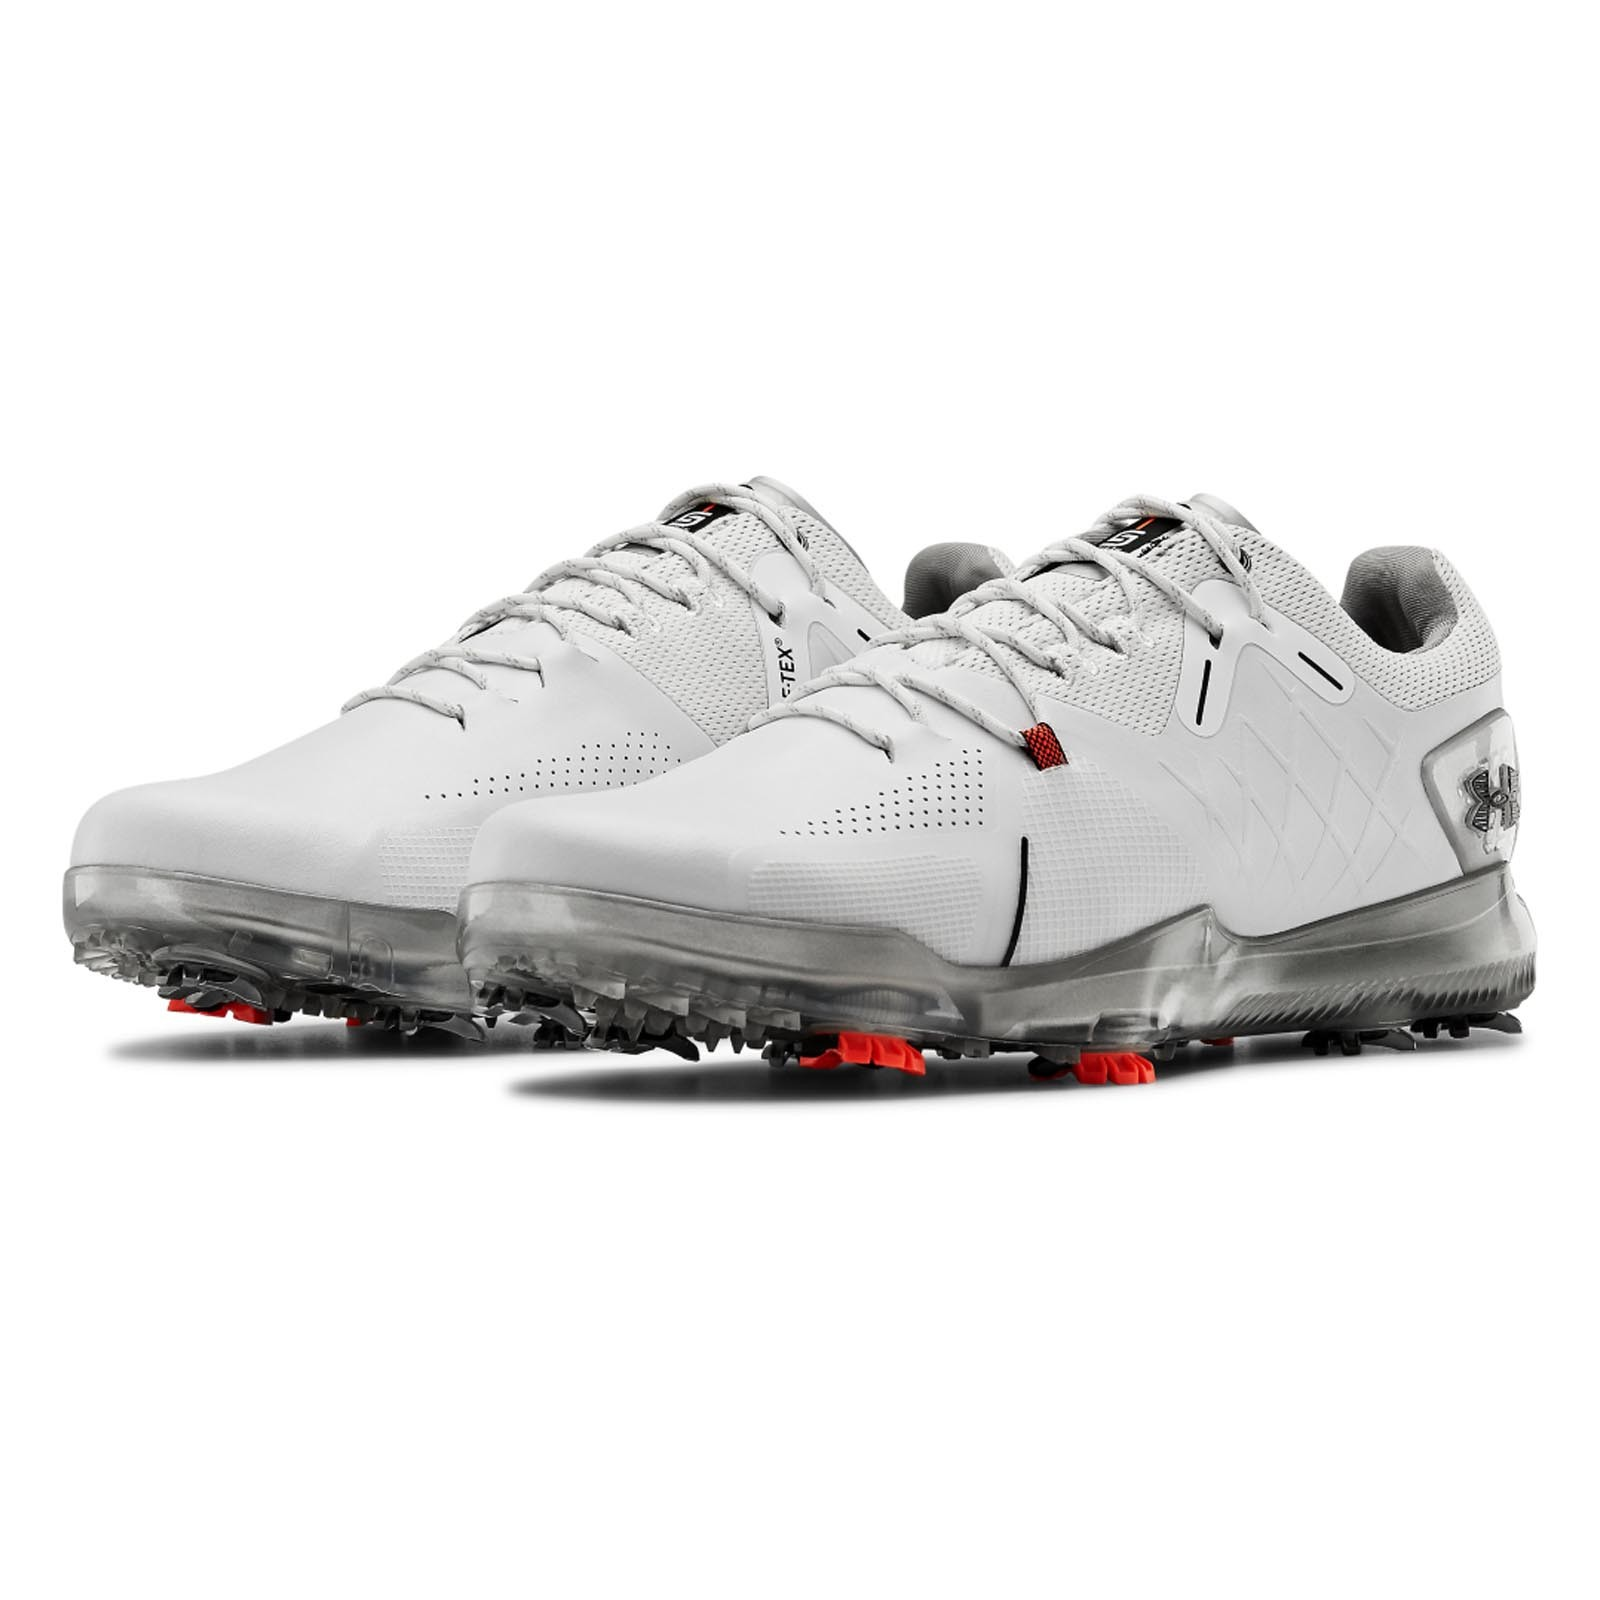 Under Armour Spieth 4 GTX E Golf Shoes